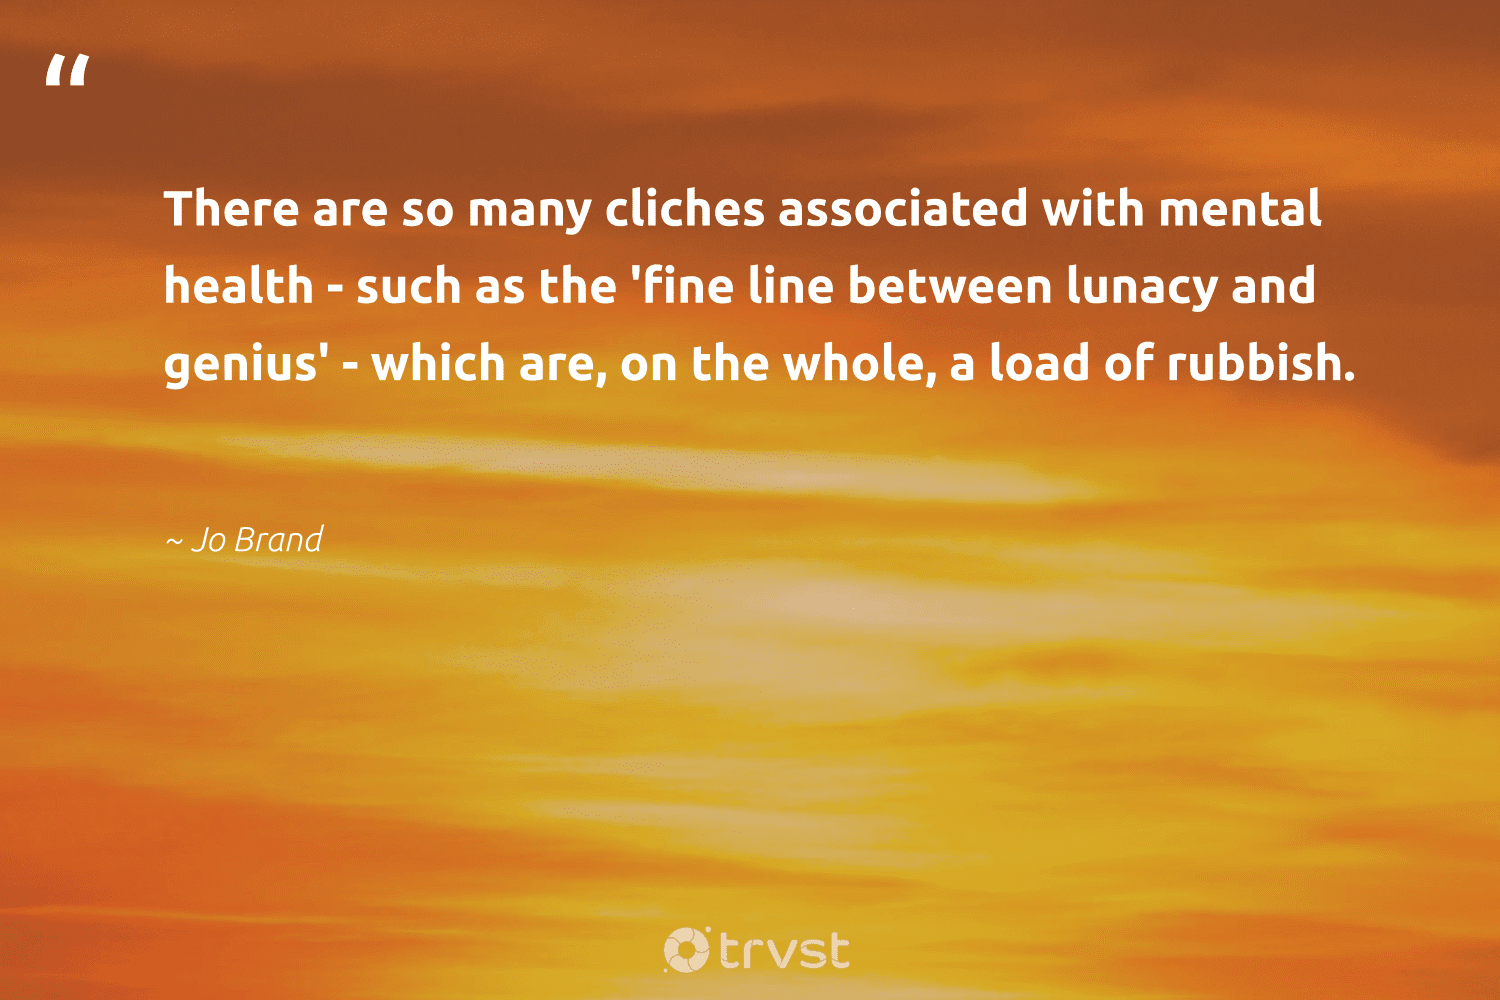 """""""There are so many cliches associated with mental health - such as the 'fine line between lunacy and genius' - which are, on the whole, a load of rubbish.""""  - Jo Brand #trvst #quotes #mentalhealth #health #anxiety #nevergiveup #begreat #planetearthfirst #stampoutthestigma #changemakers #mindset #dotherightthing"""